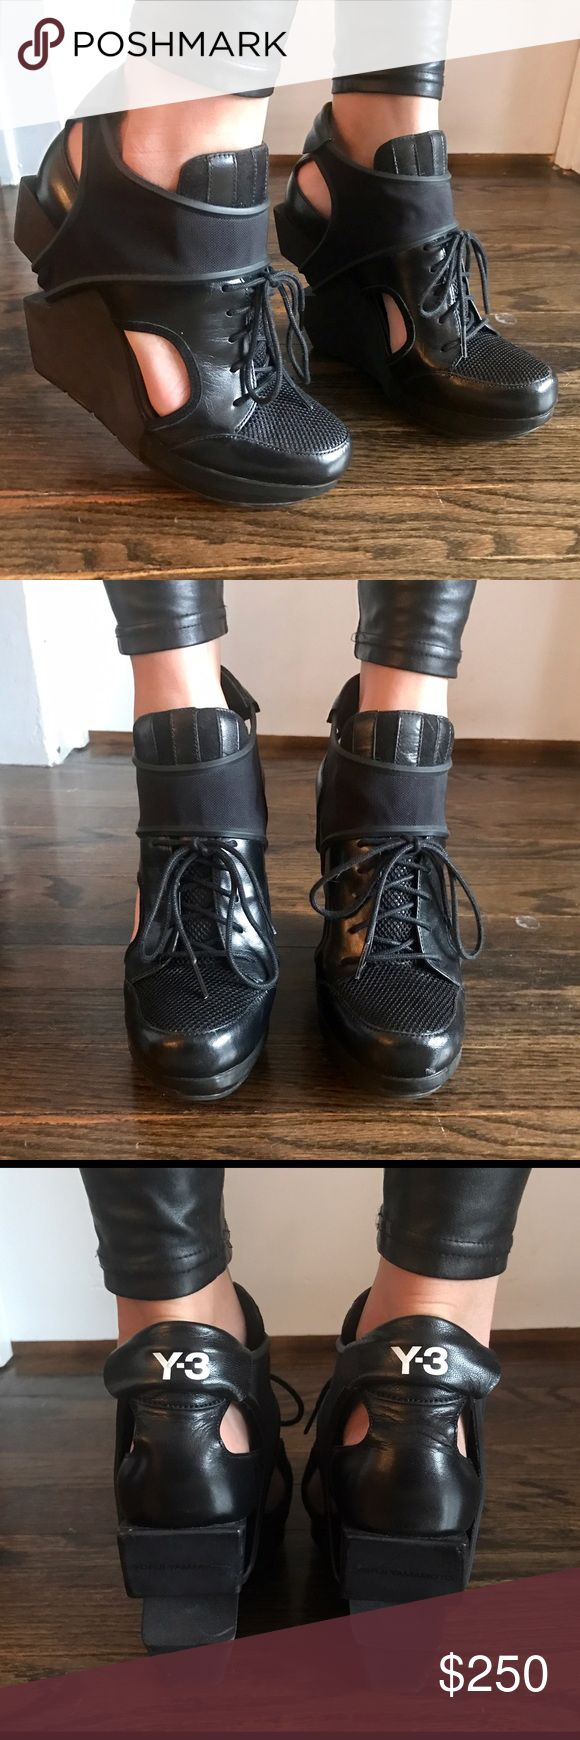 Y3 wedges Barely worn, pretty much brand new, rare Y3 Yohji Yamamoto X adidas collaboration wedged heels. Leather lace up in the front with athletic strap that tucks under the heel. Women's size 9 Yohji Yamamoto Shoes Wedges